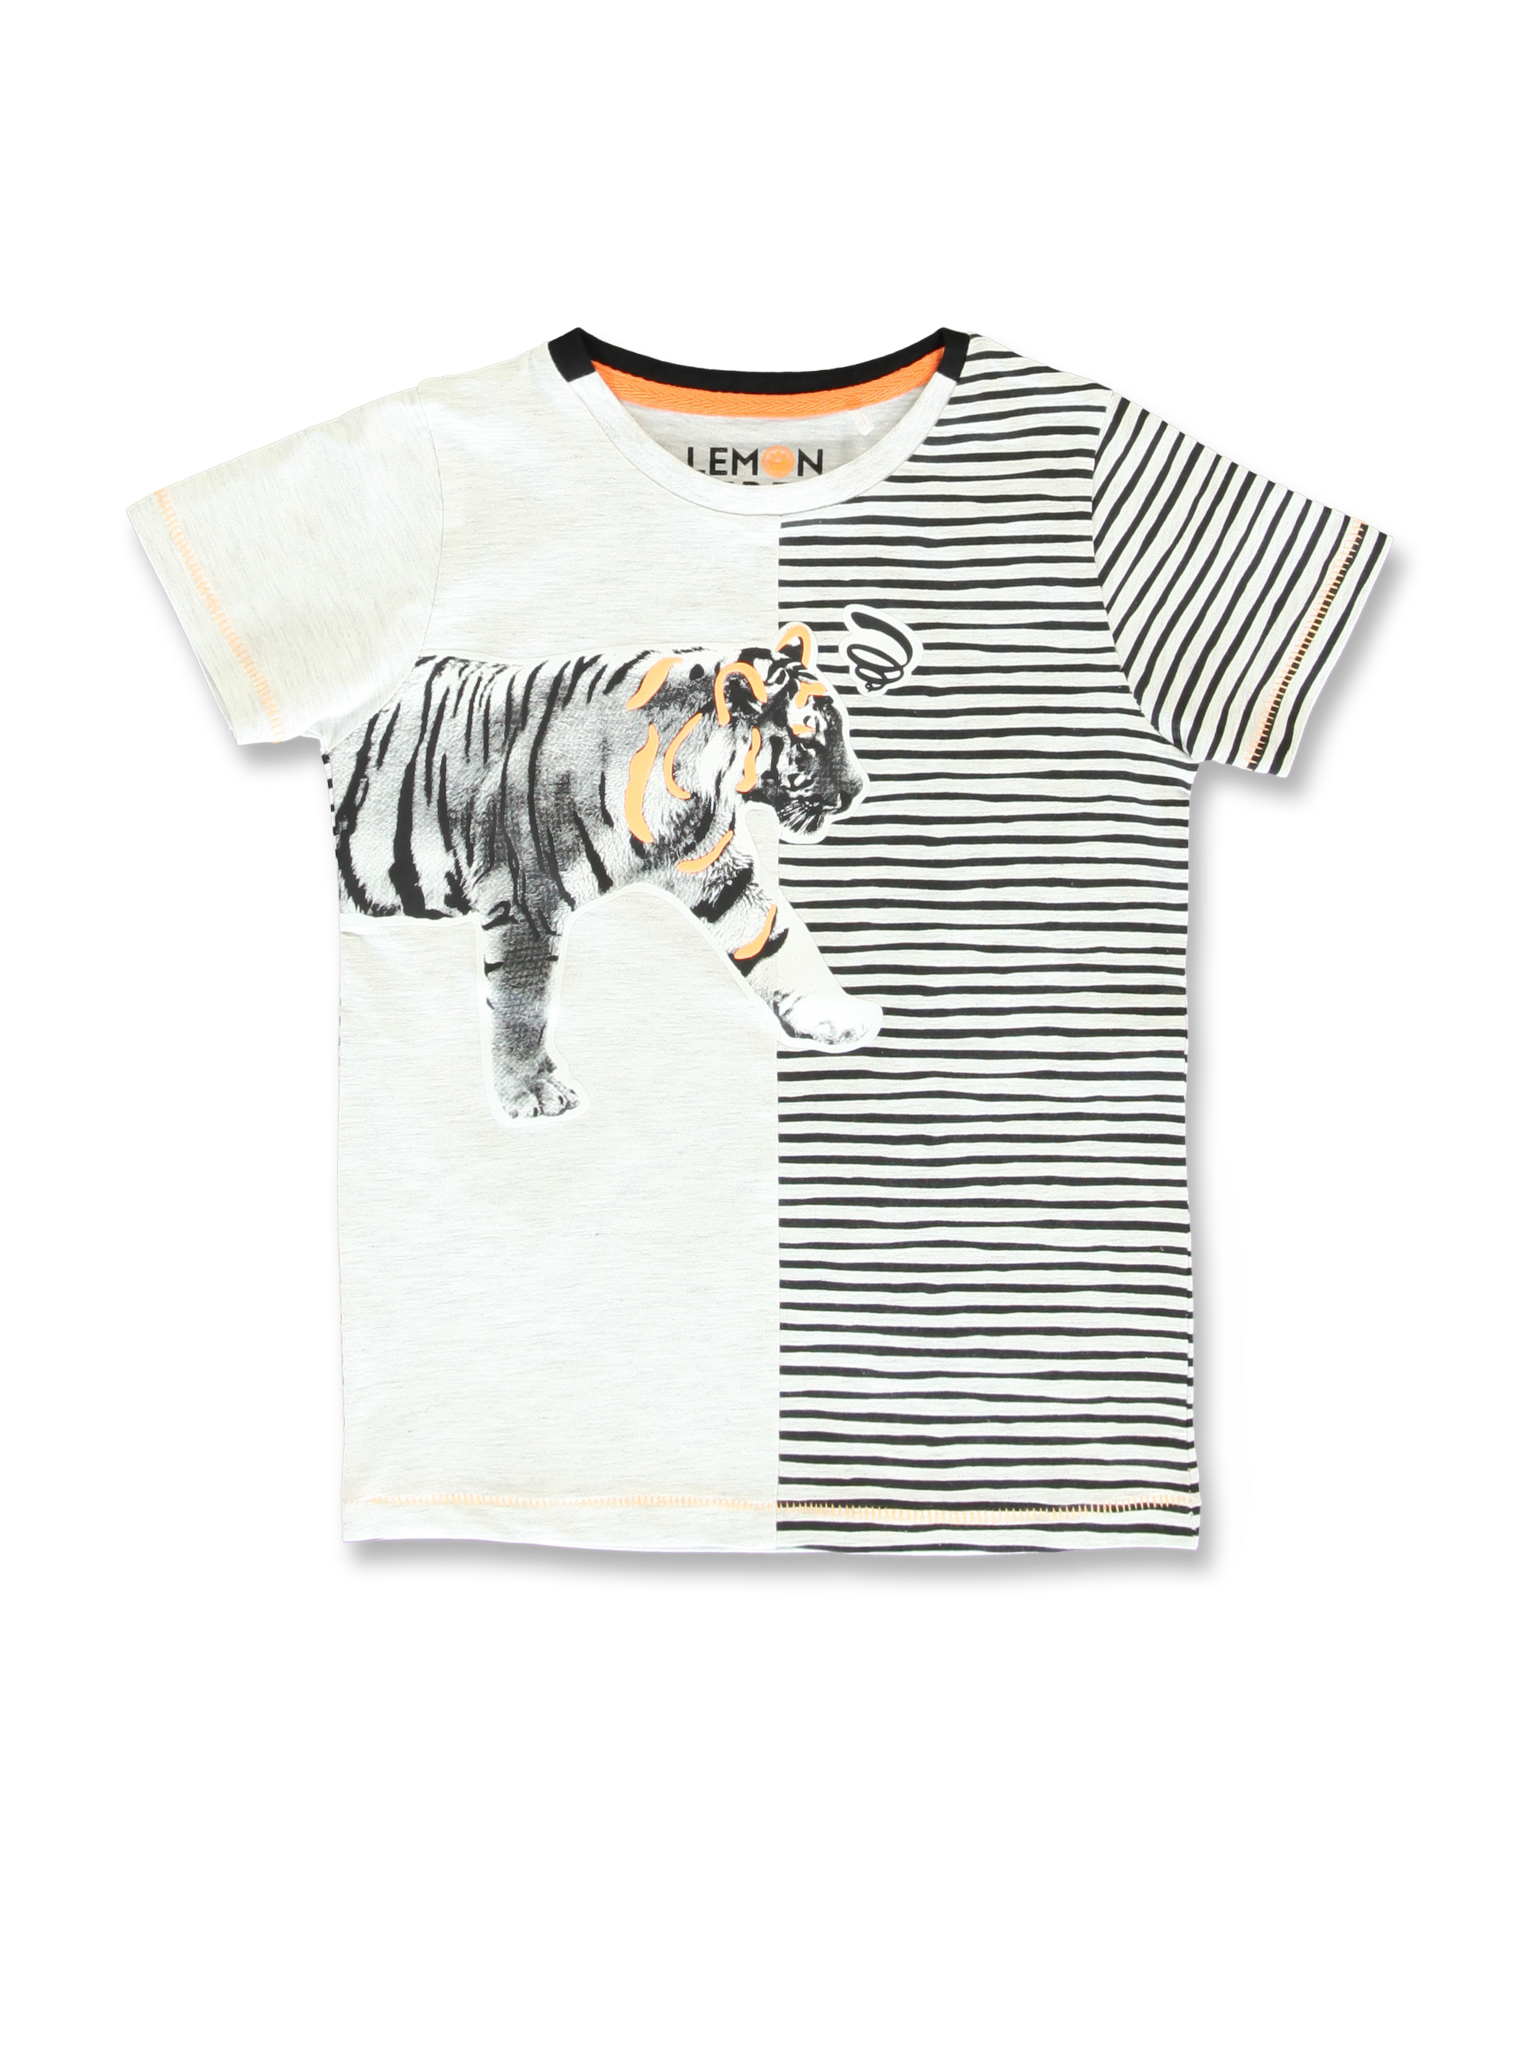 All Brands | Summerproducts Small Boys | T-shirt | 12 pcs/box